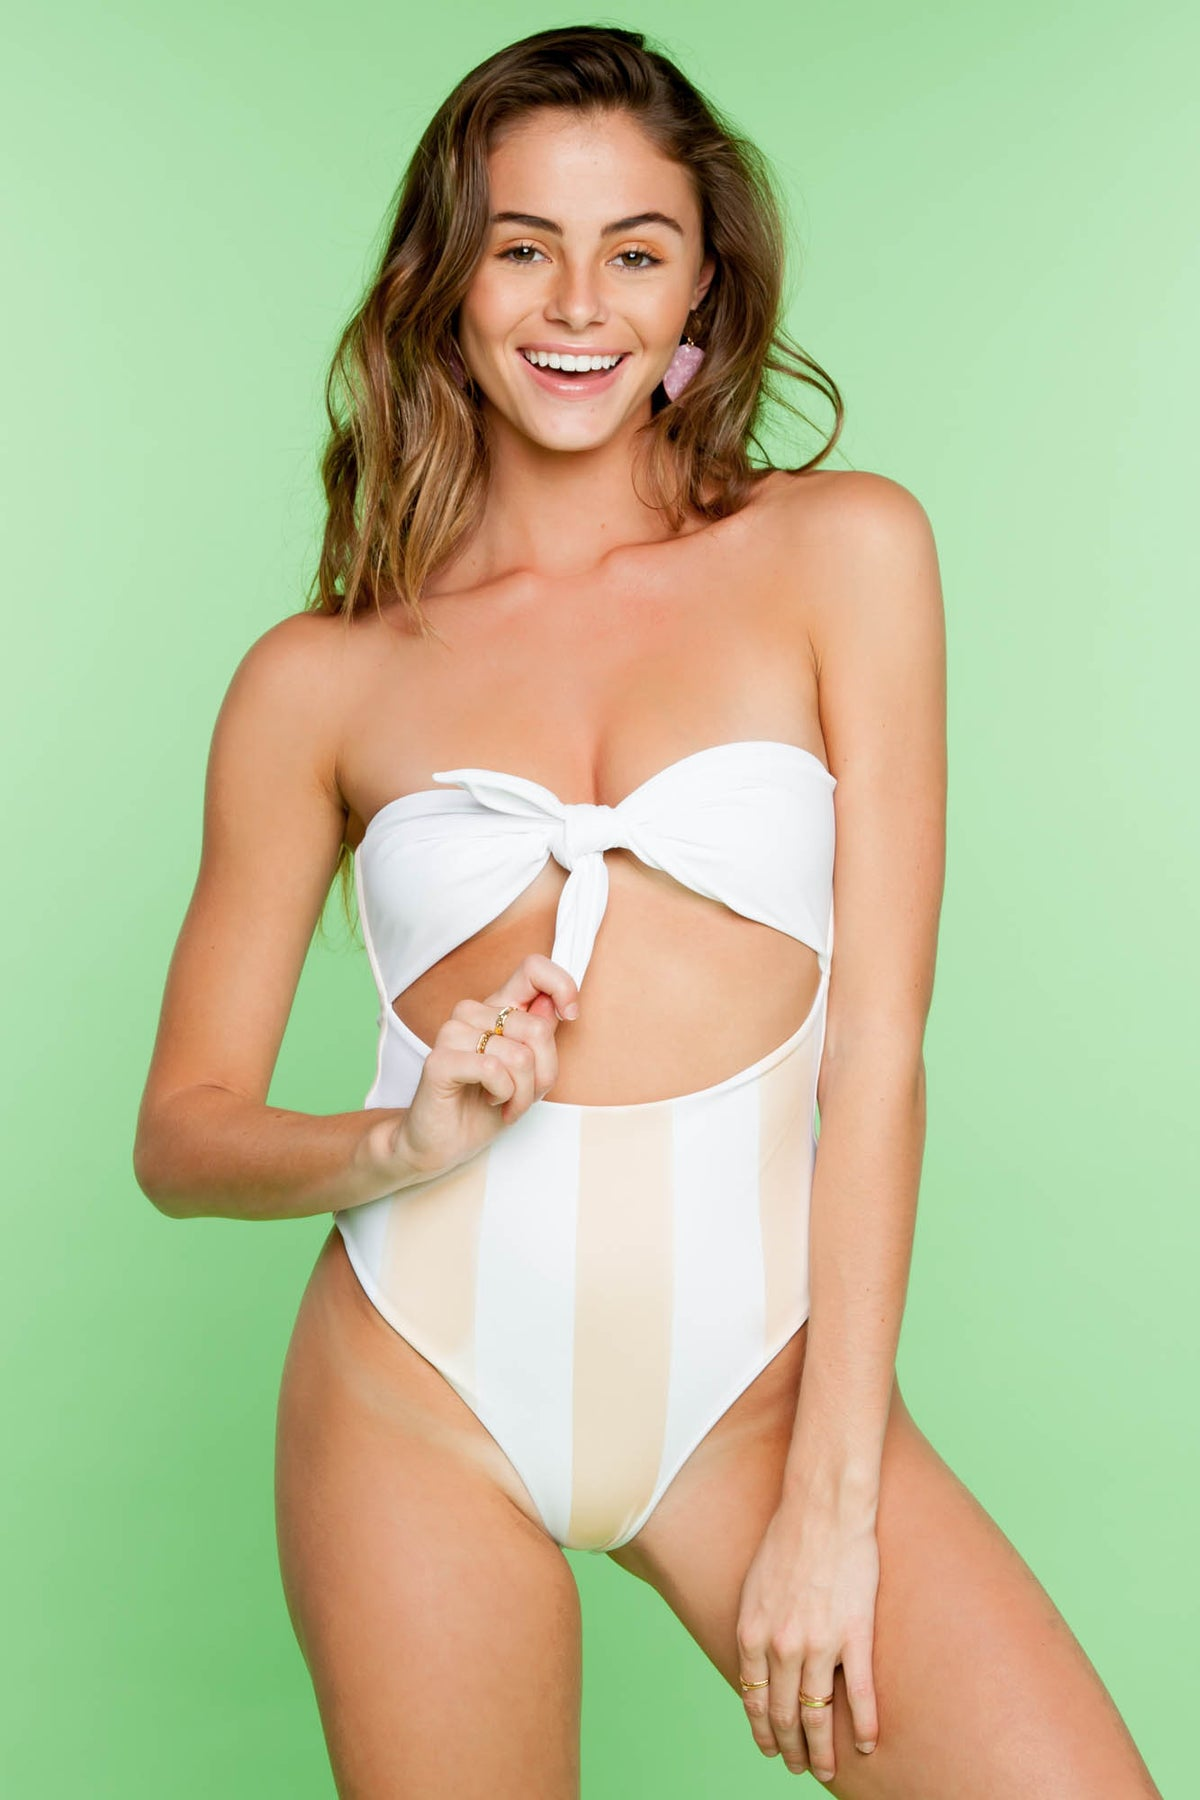 Top Knot One Piece - Skinny Dip